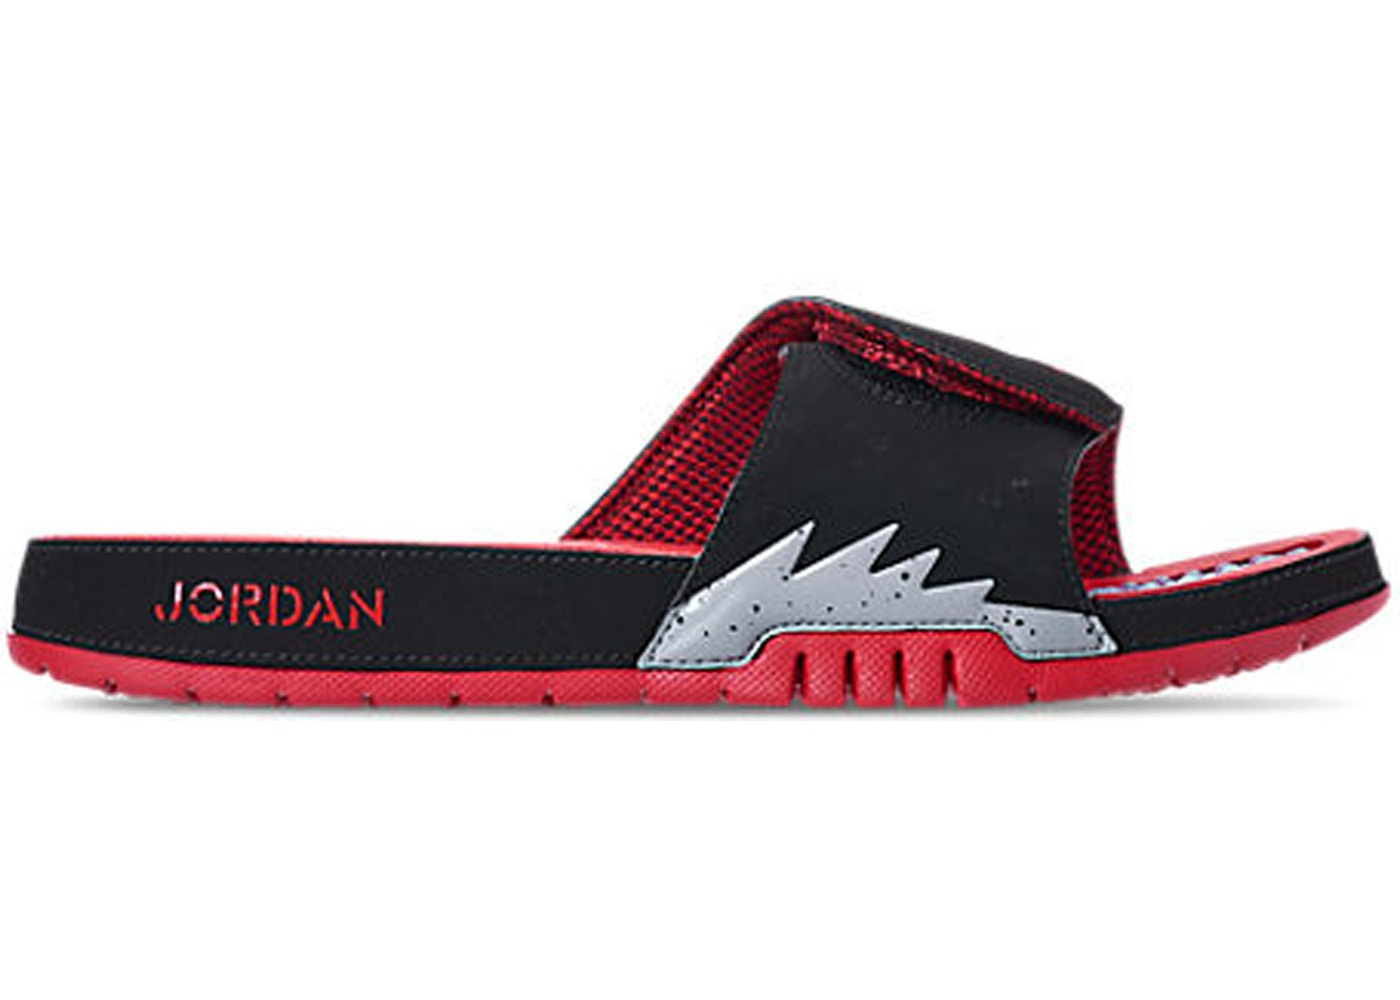 c011981d7 Jordan Hydro 5 Retro Black Particle Grey University Red - 555501-060